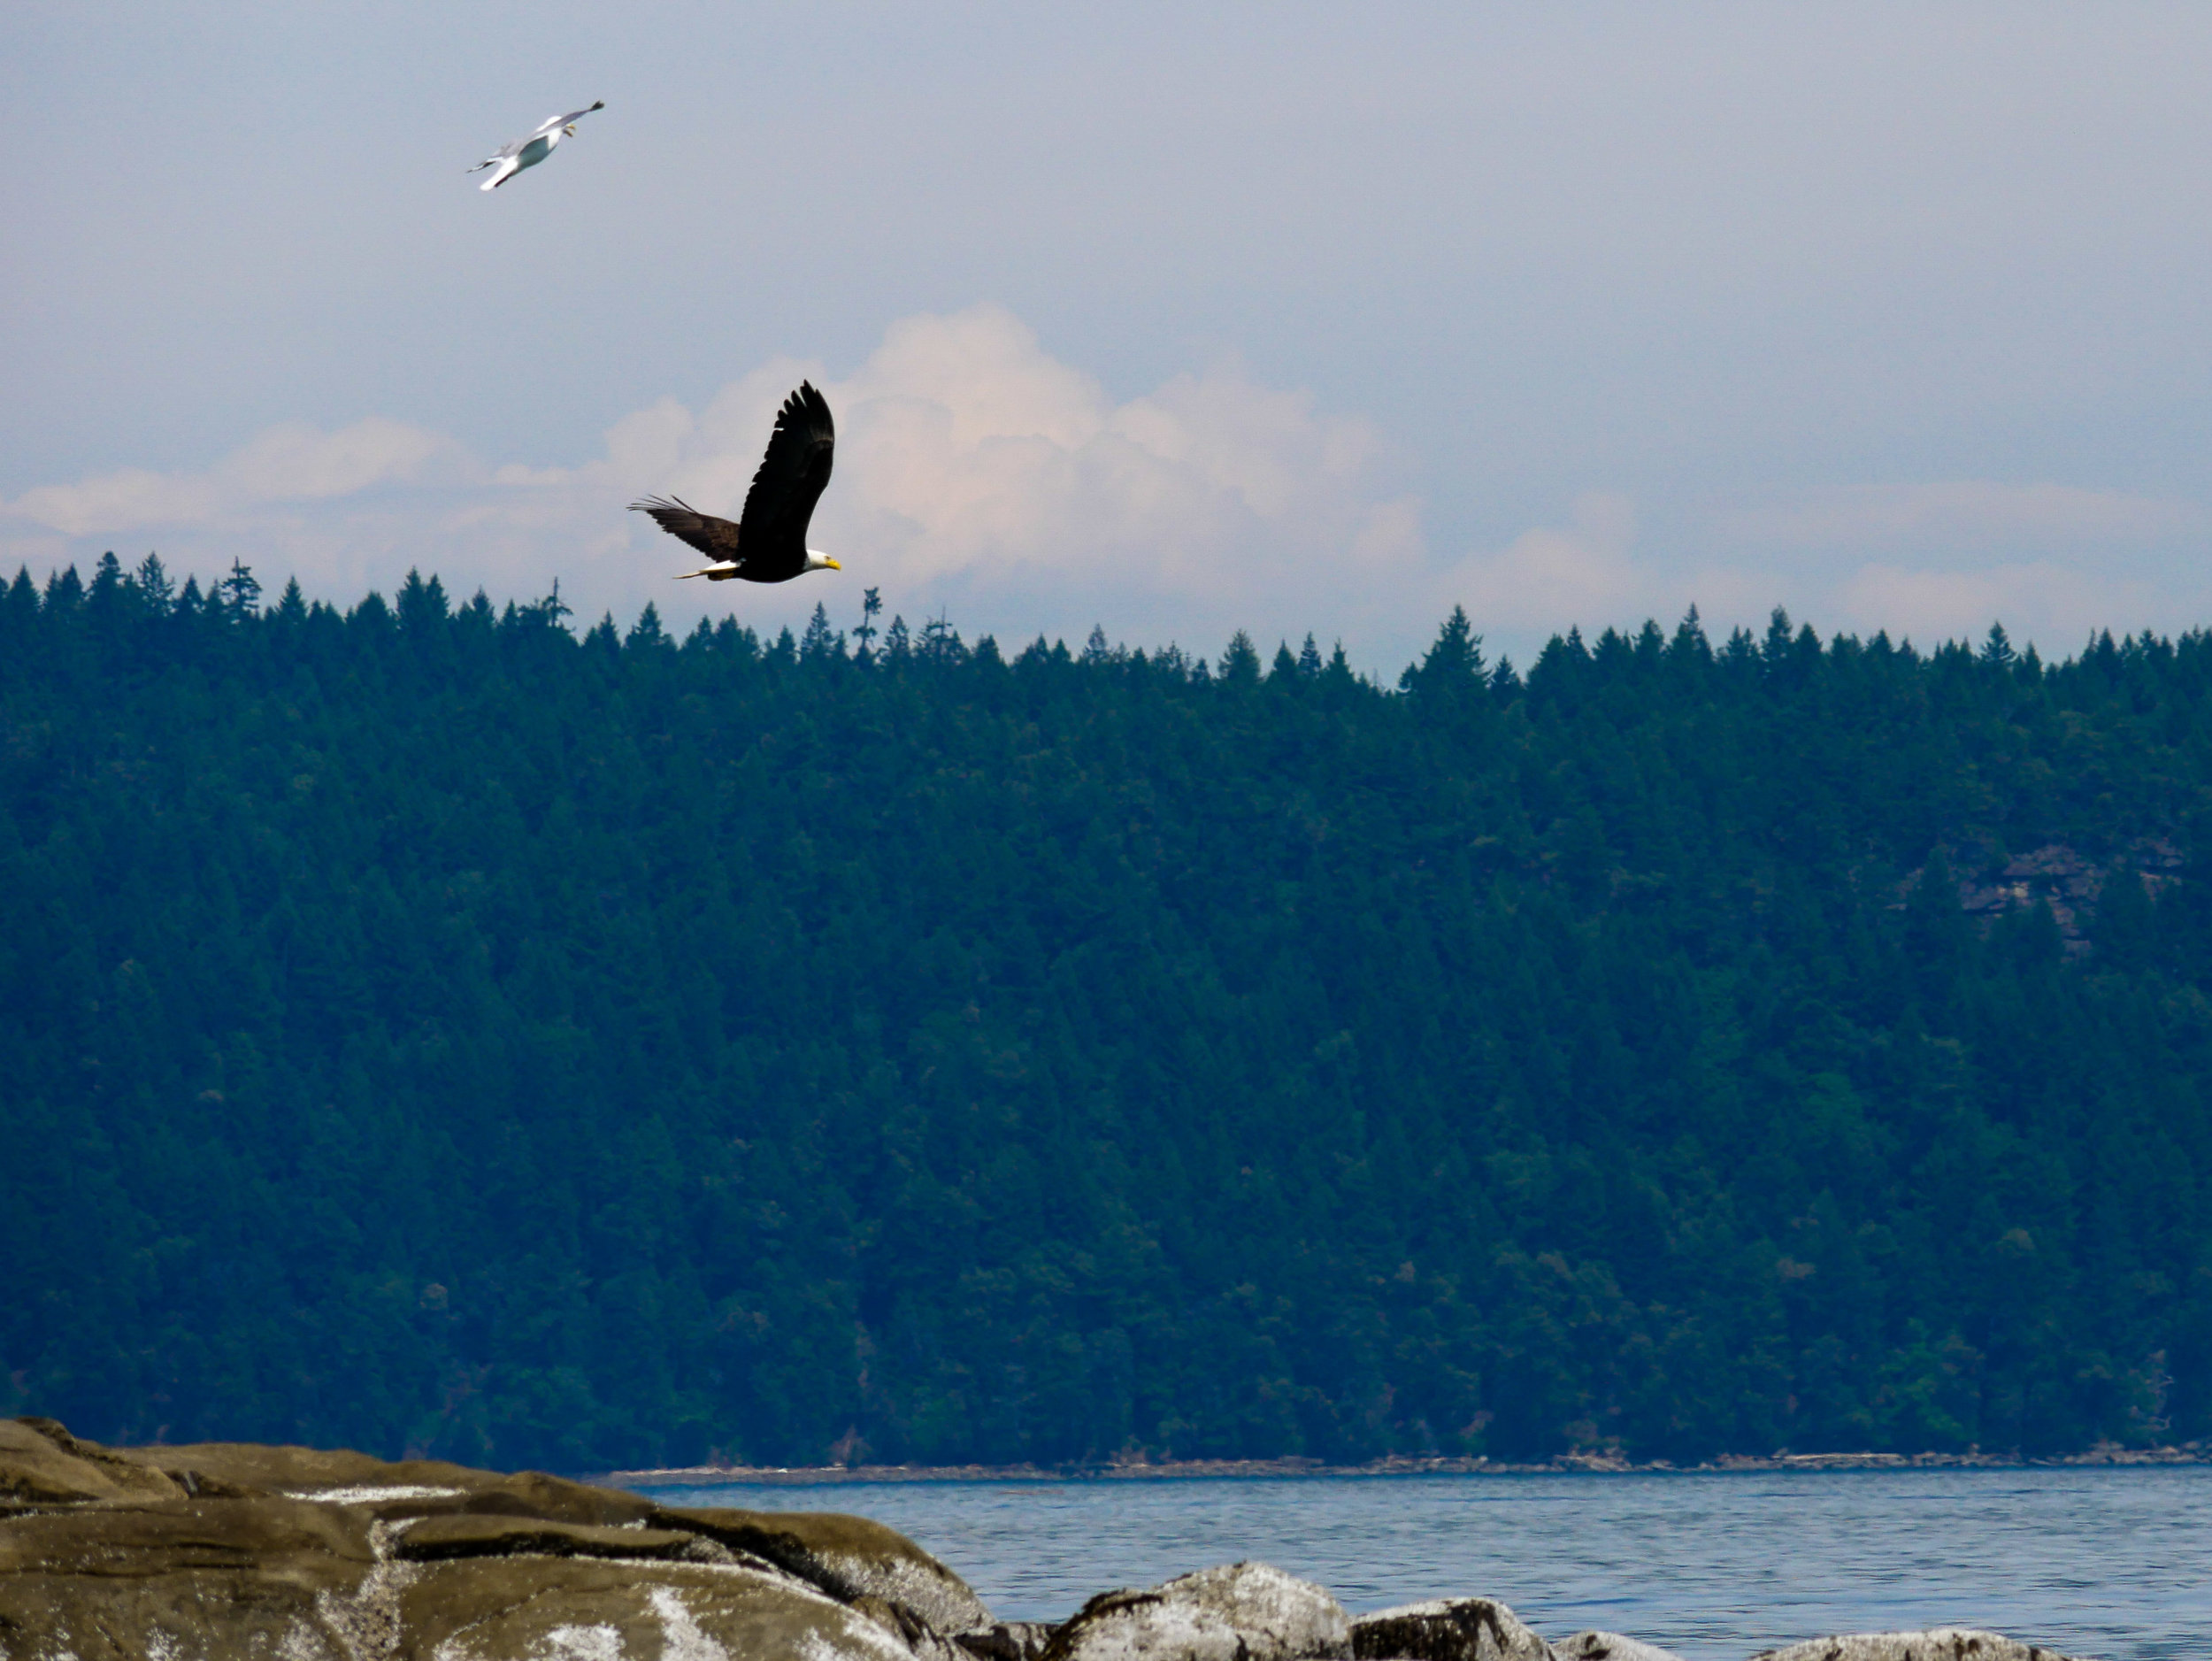 The bald eagle taking off just as we spotted it! Photo by Alanna Vivani.